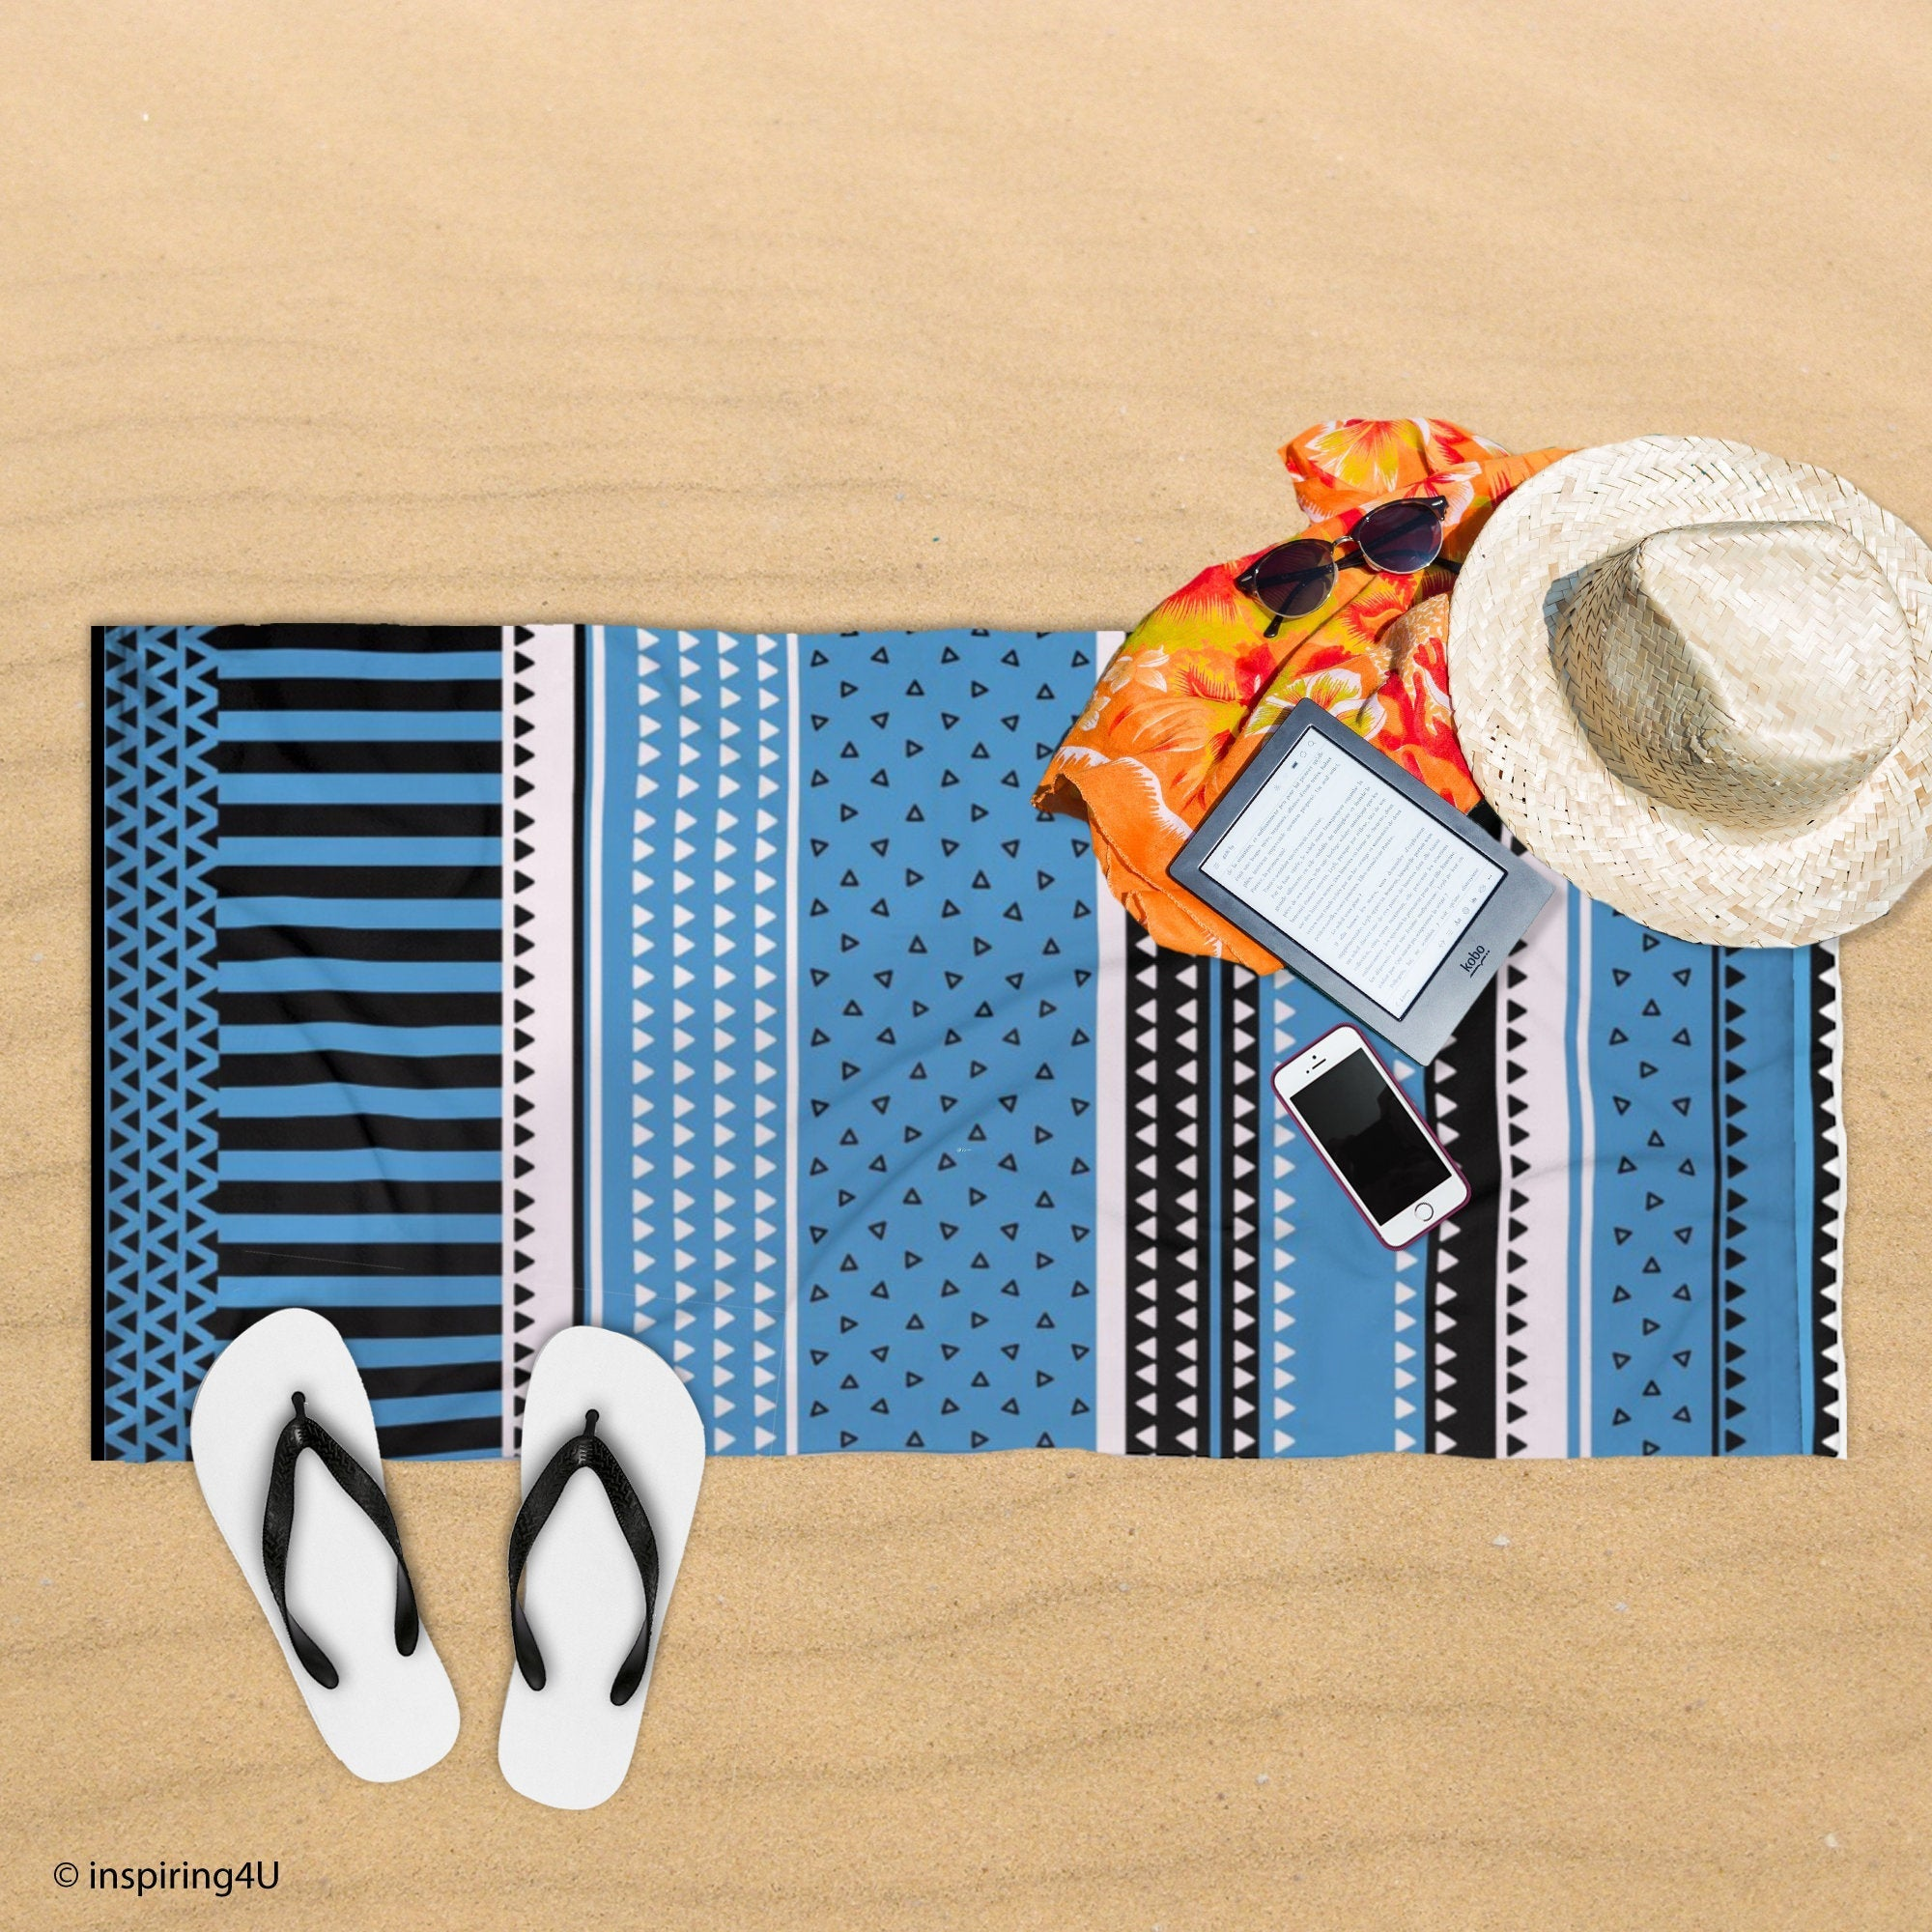 Blue Super Soft Sea Beach Towel. Cotton Pool Towel. Black and White Texture Towel. Gift for Her.